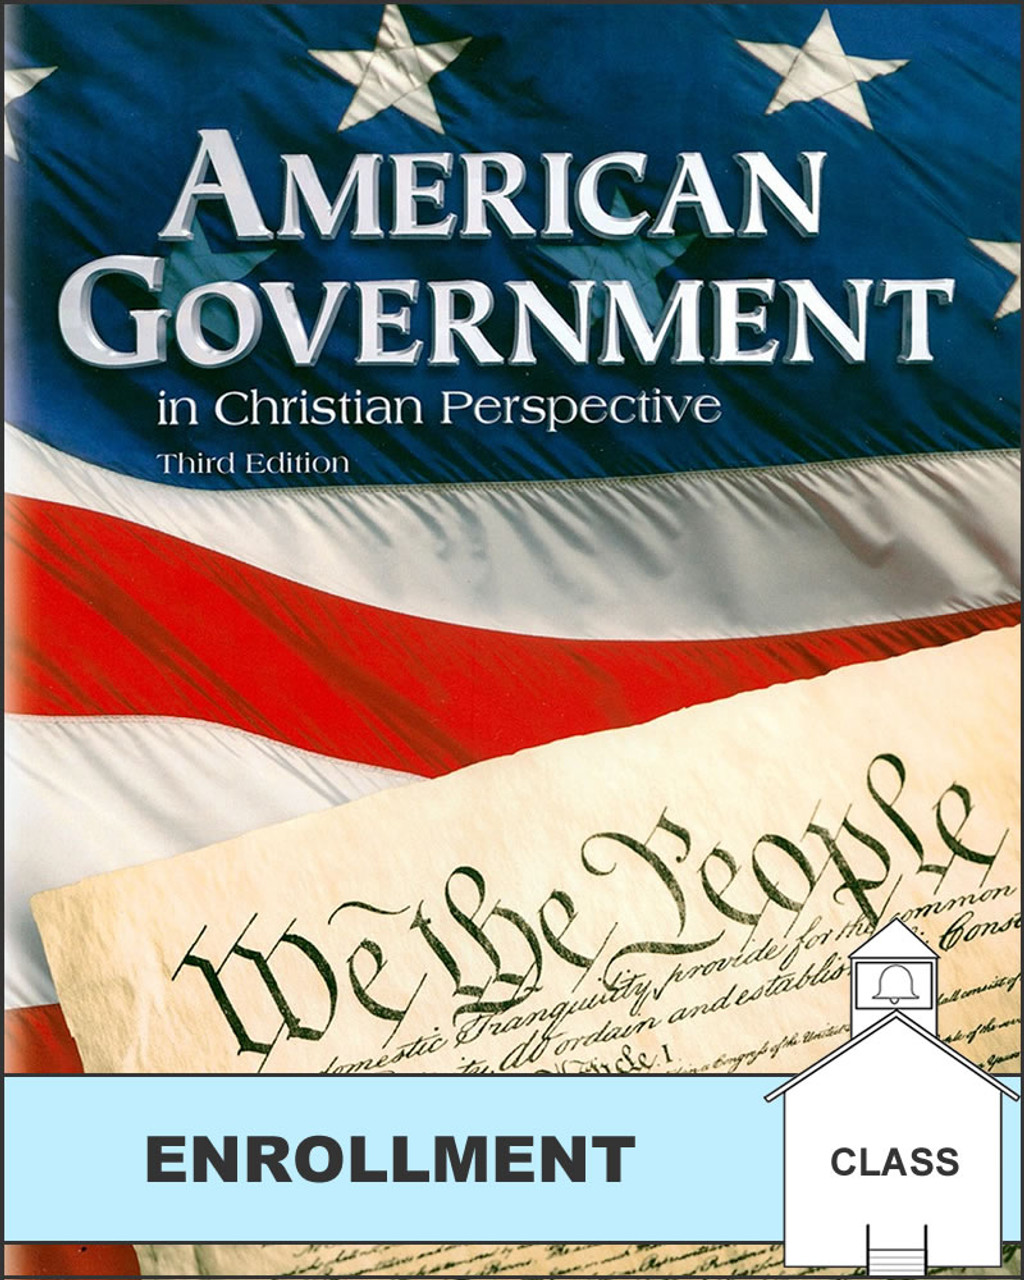 American Government in Christian Perspective, 3rd edition